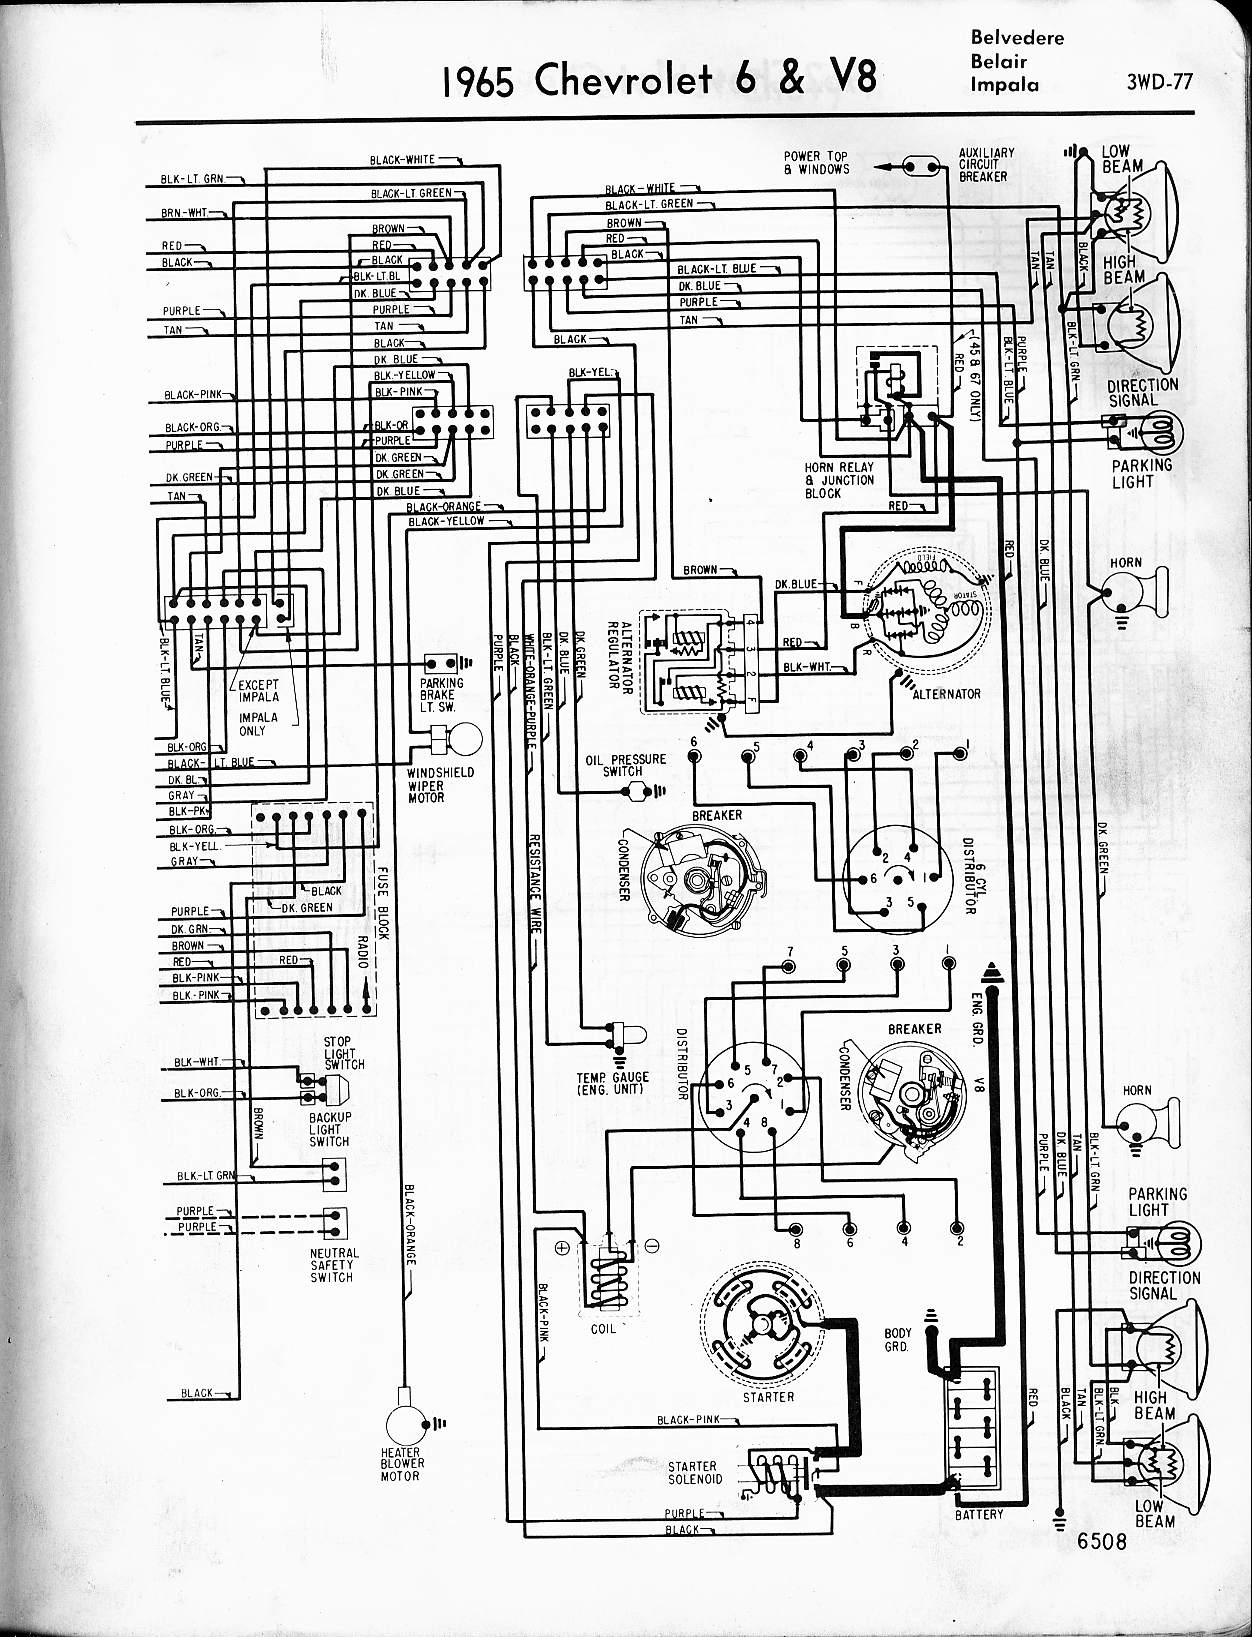 MWireChev65_3WD 077 chevy diagrams 1965 thunderbird alternator wiring diagram at crackthecode.co